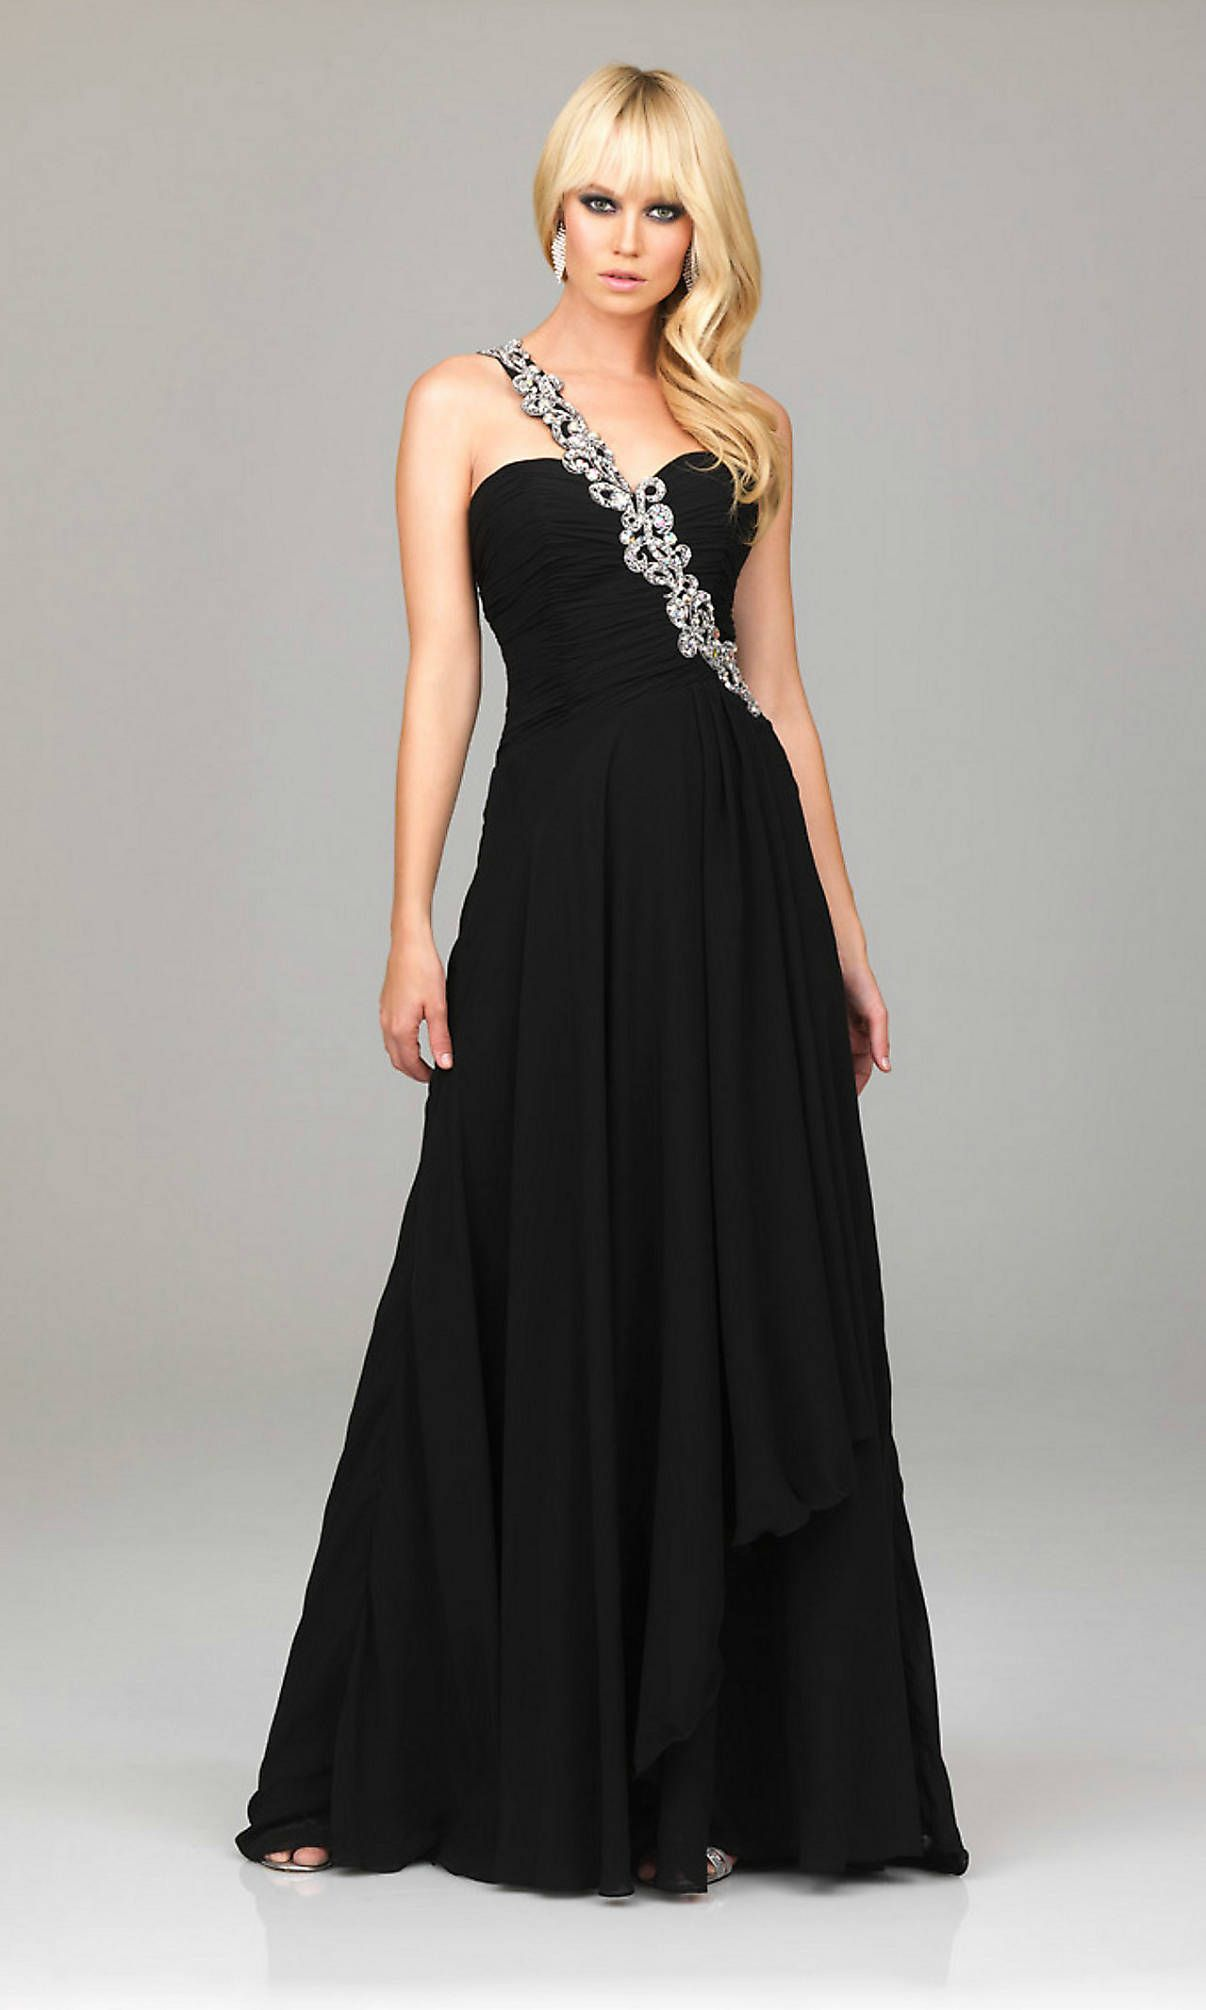 78 Best images about Long Evening Dress on Pinterest - Black prom ...